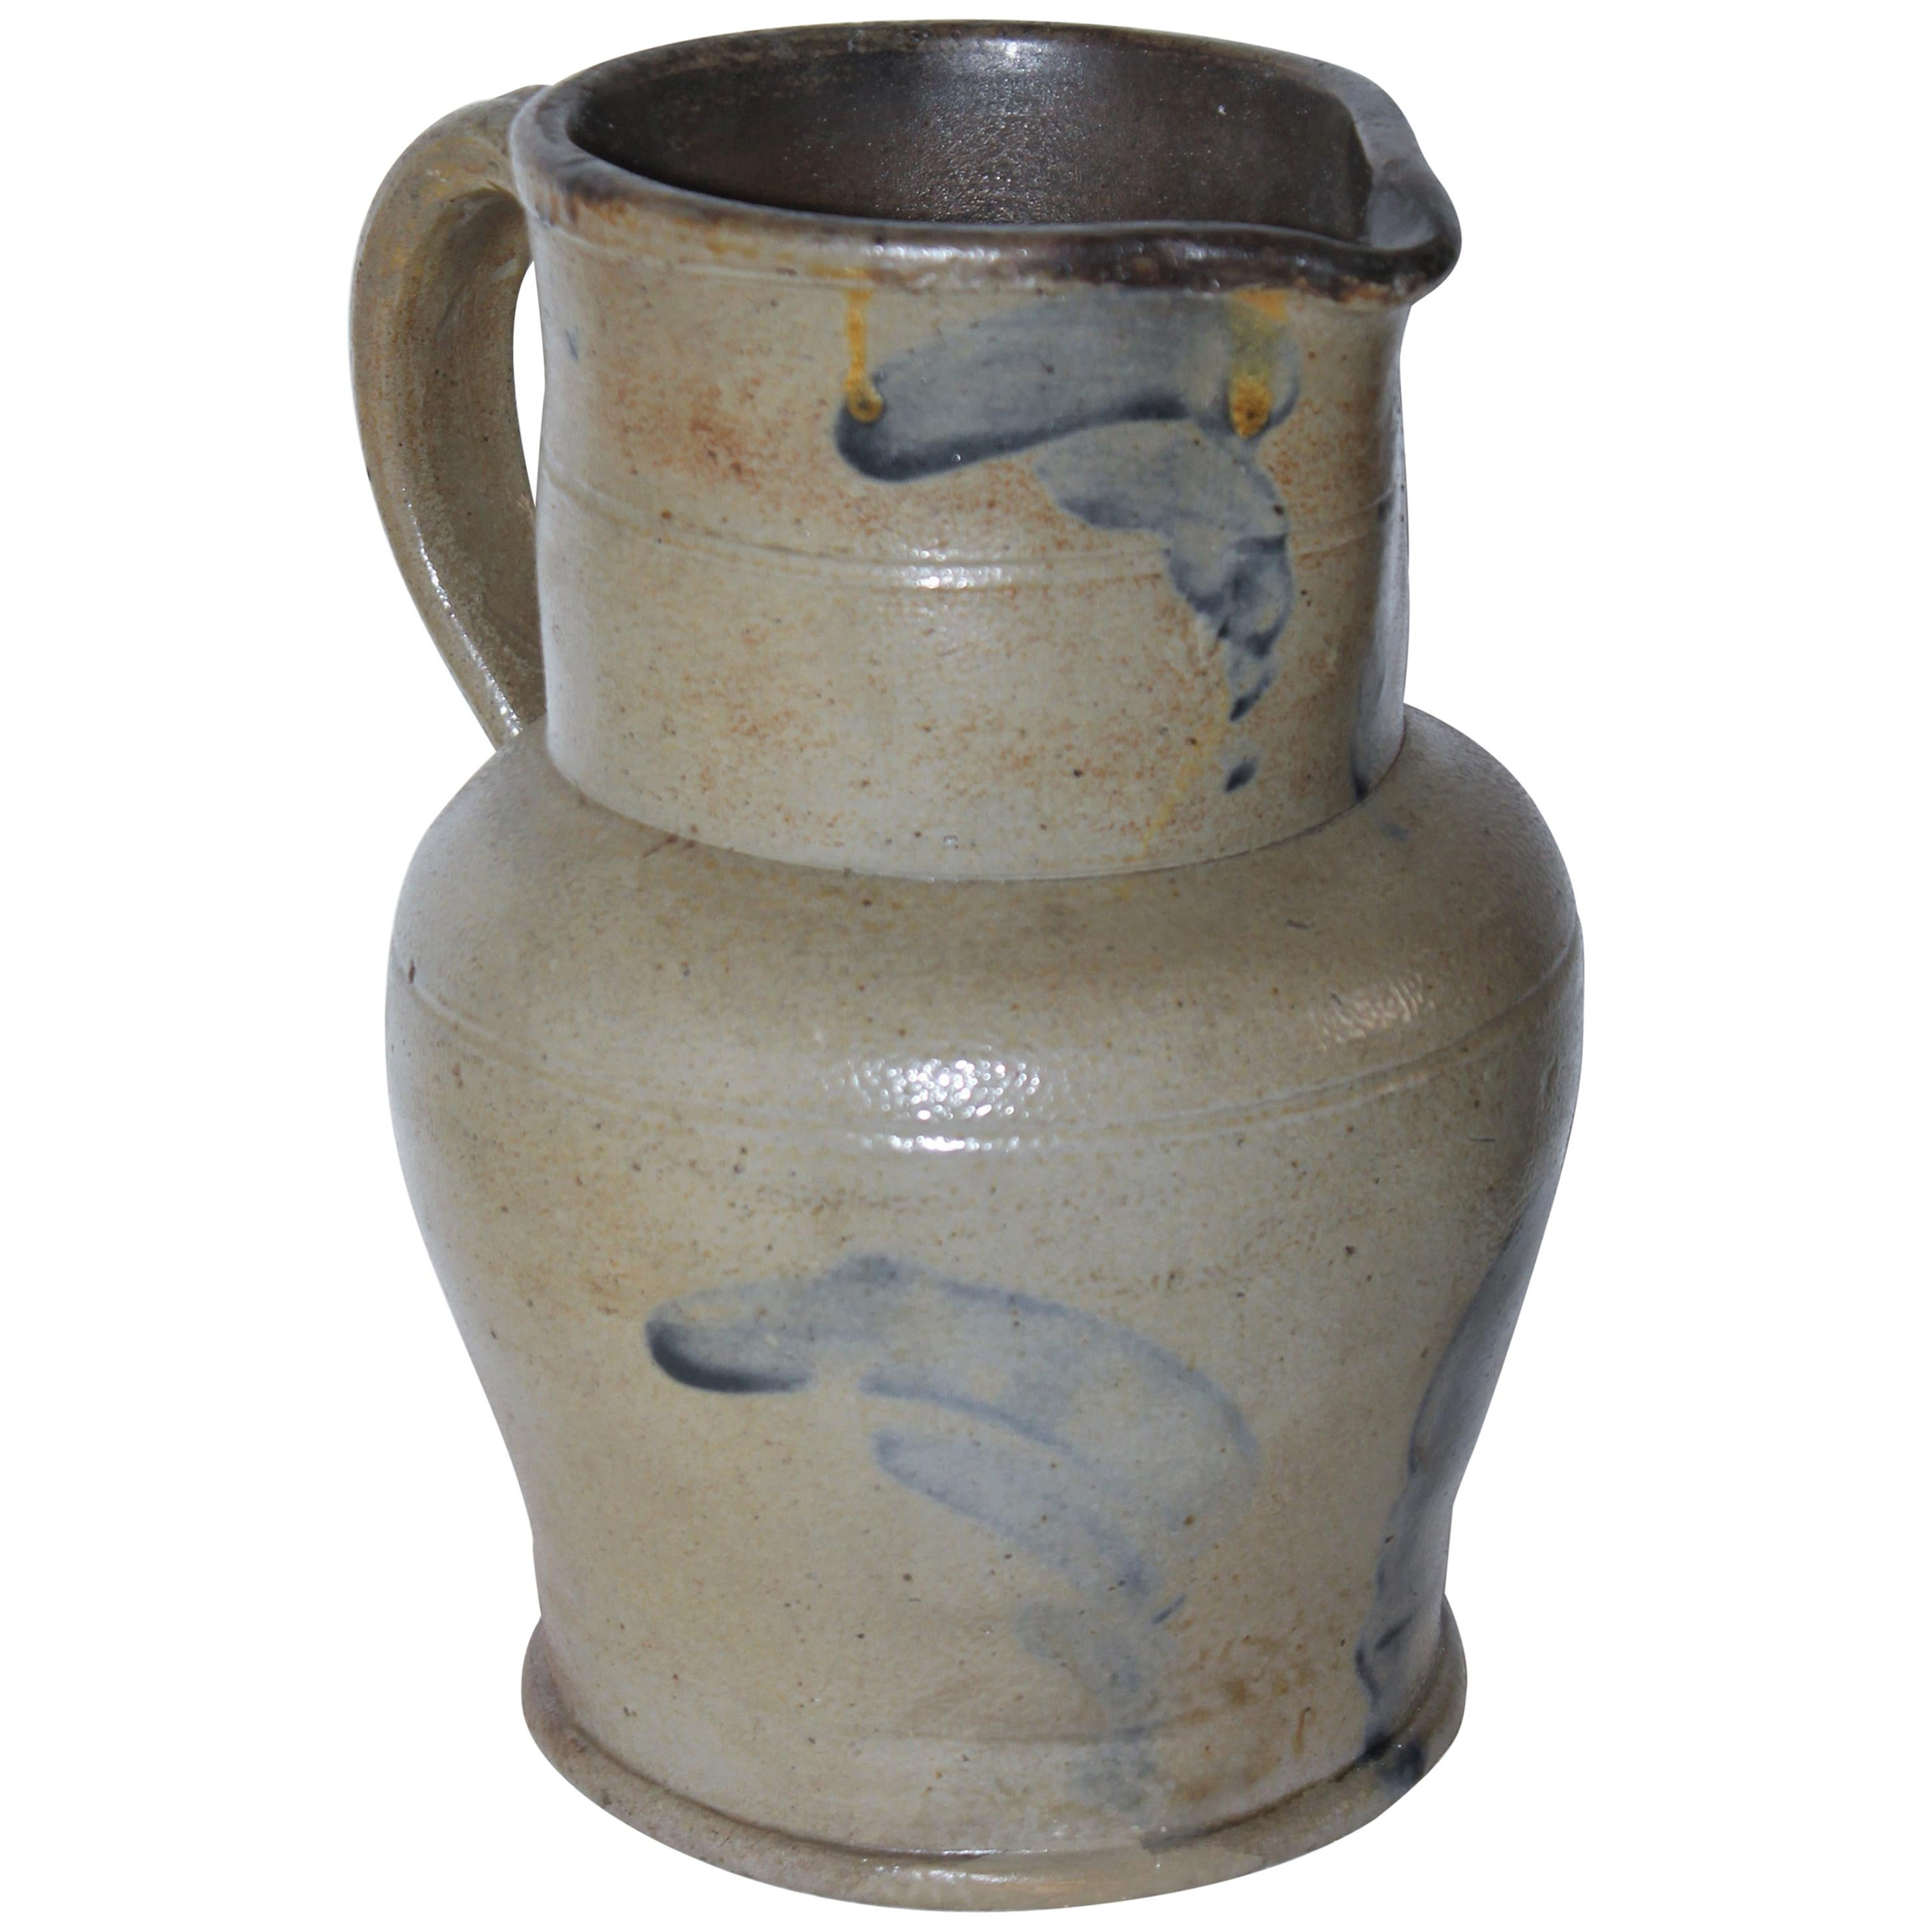 19thc Rare Small Decorated Stoneware Pitcher